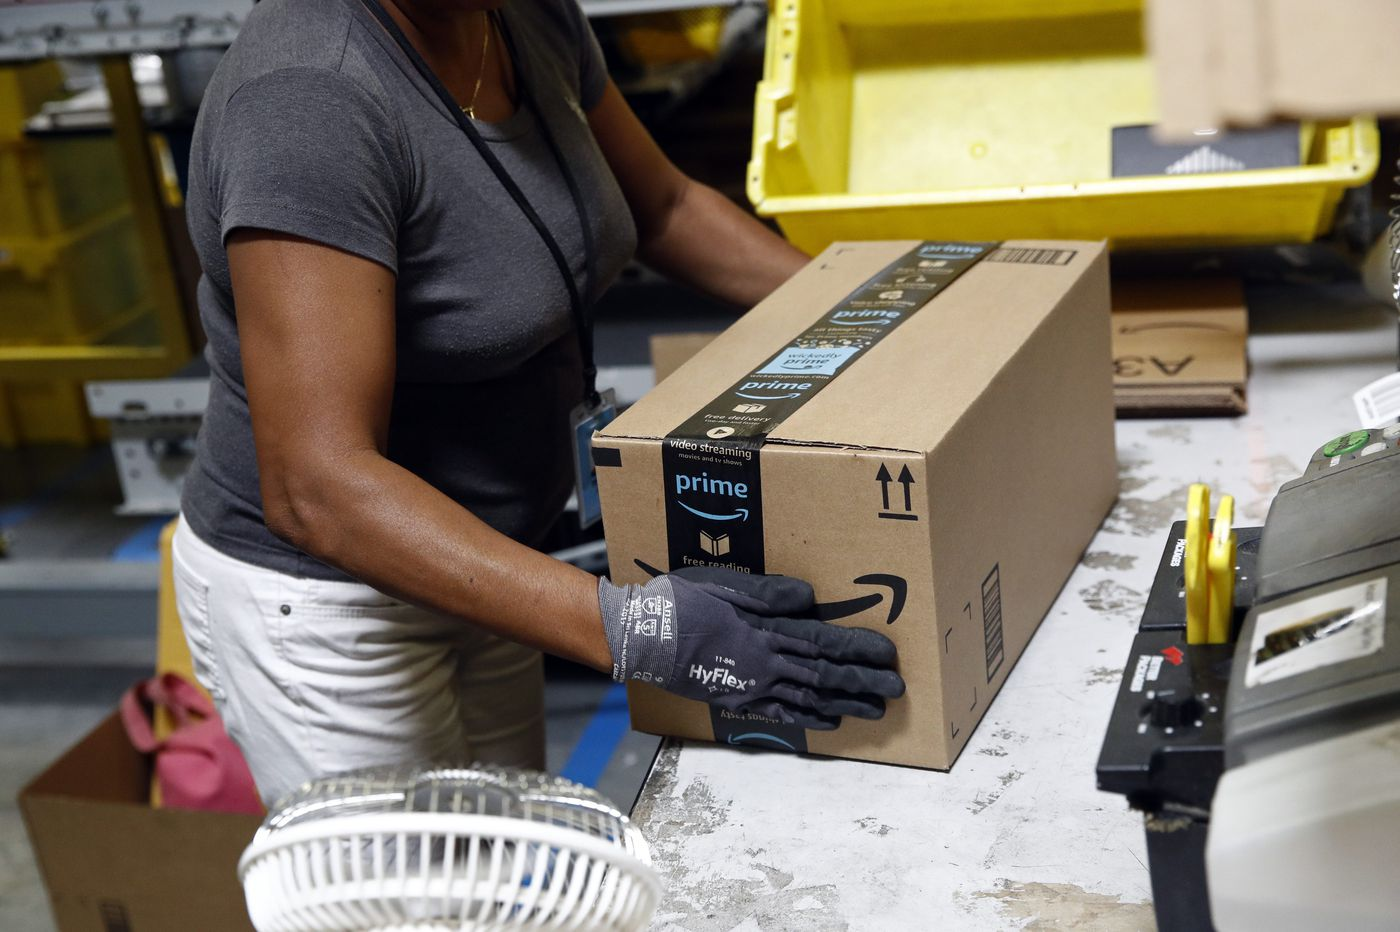 Here's how Philly could invest the $1.1 billion it offered Amazon | Editorial